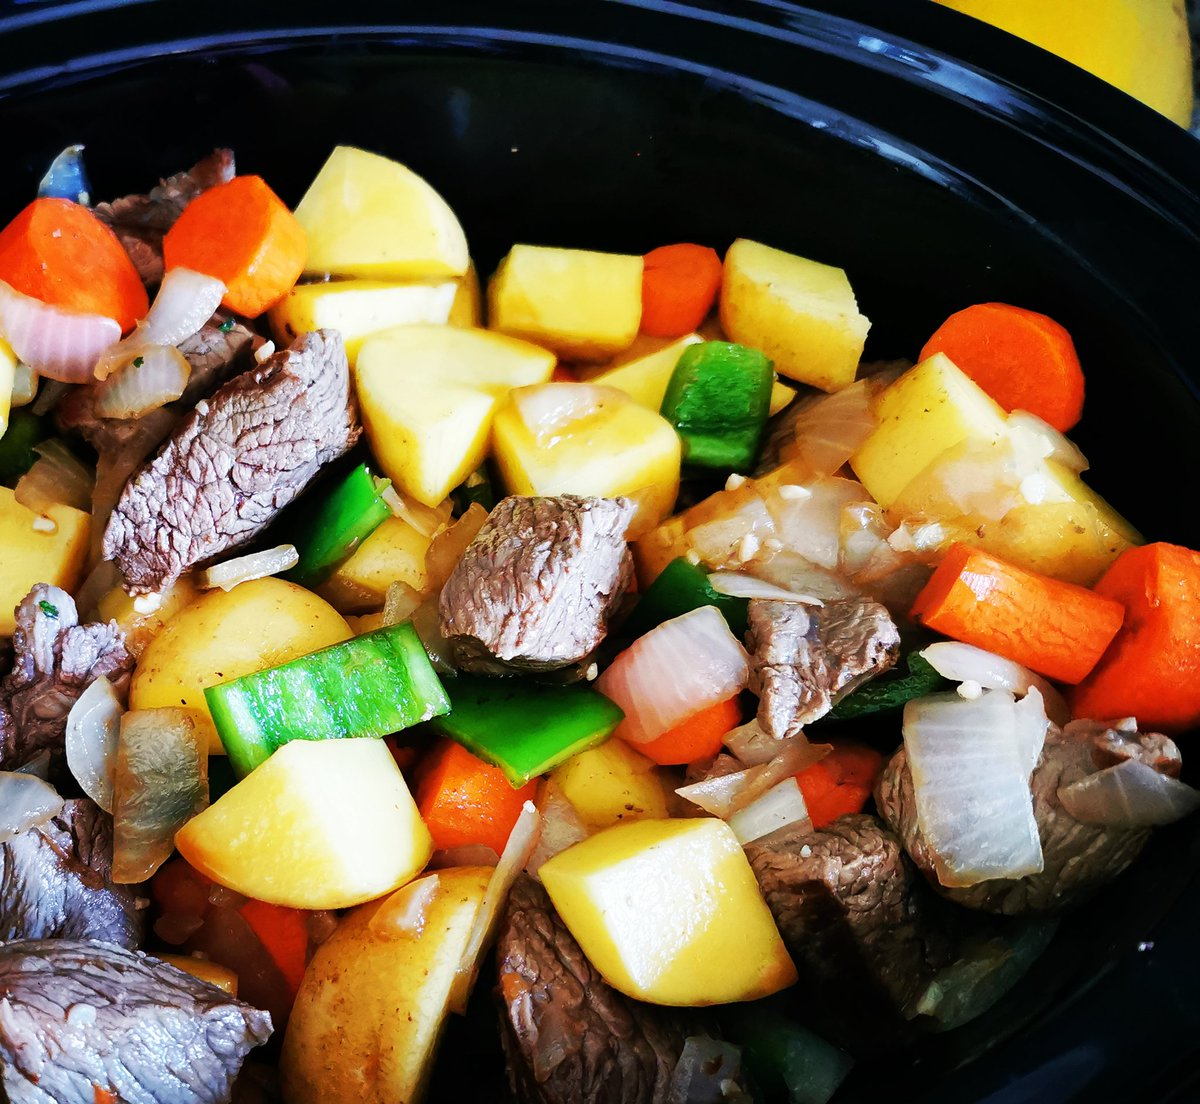 Record cold temperature was broken yesterday.... Perfect excuse to get this Beef Stew in my belly! 👩🍳🤤 #foodpics #homecooking #deliciousfood #yummy #BestWifeEver https://t.co/28mX5PcKAC